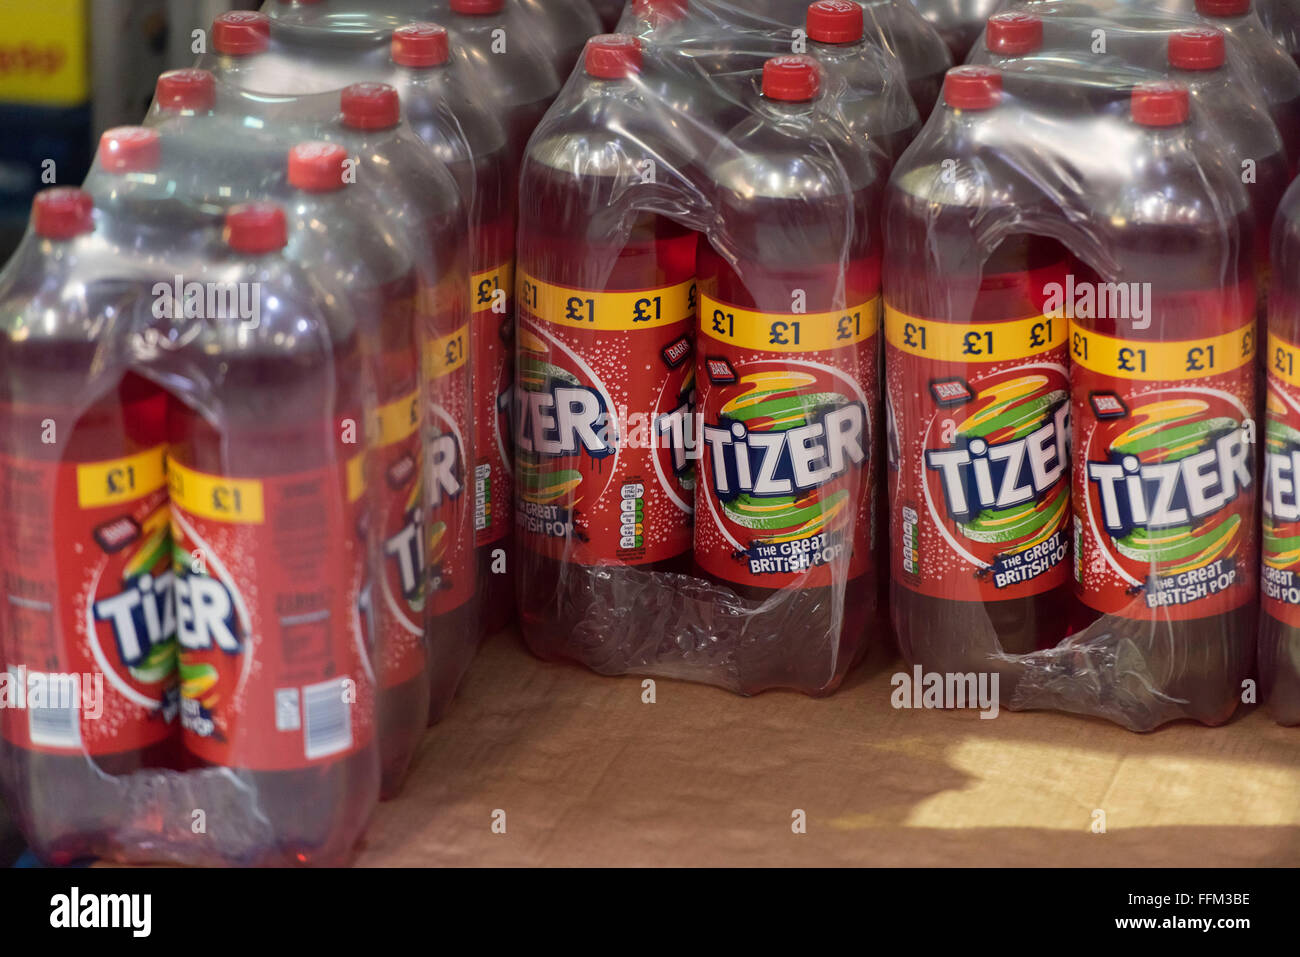 Bottles of sugar soft drink Tizer stocked in a warehouse. - Stock Image